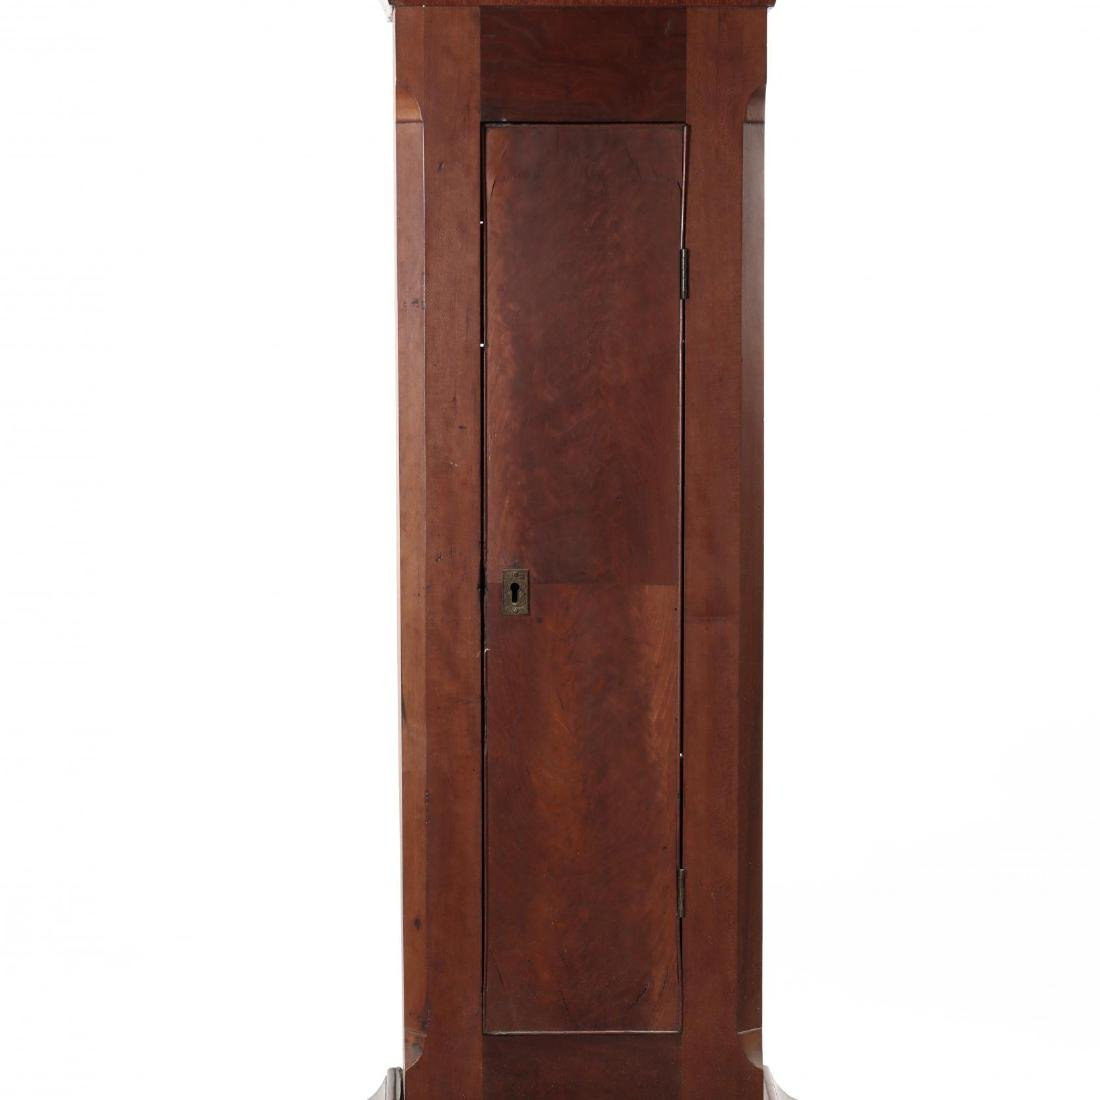 Southern Federal Tall Case Cherry Clock - 4